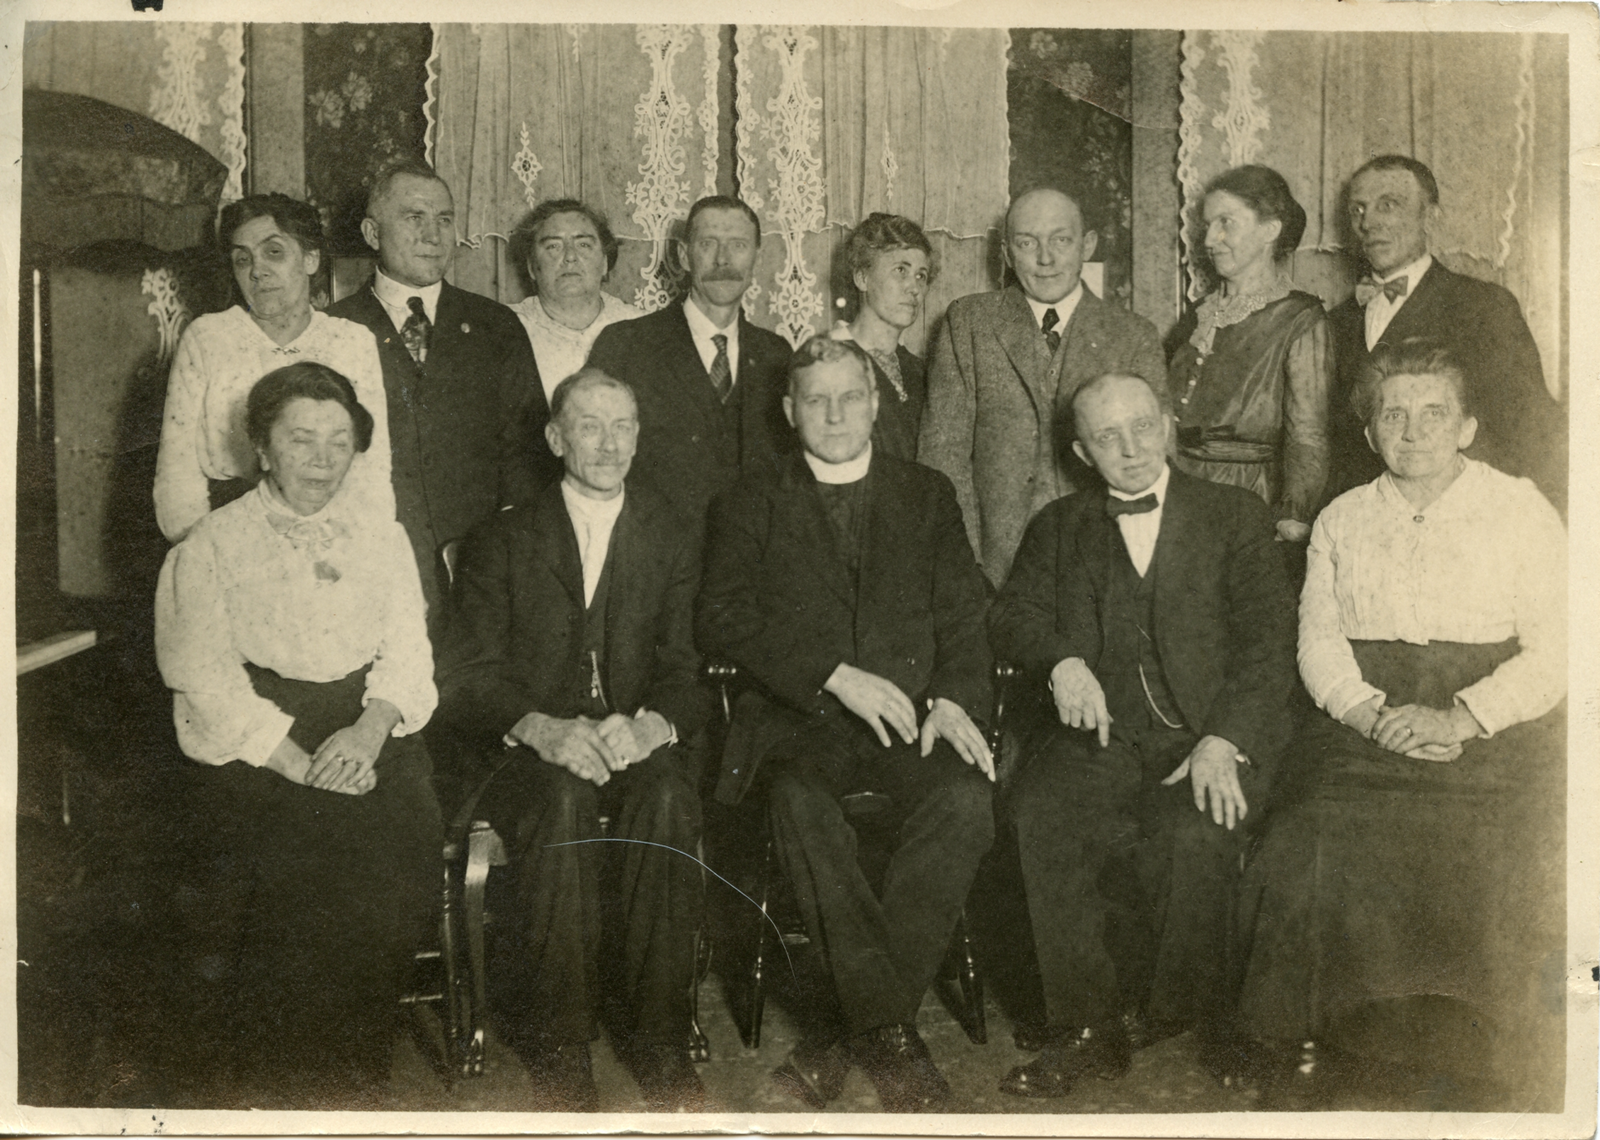 betz-group-unknown_large